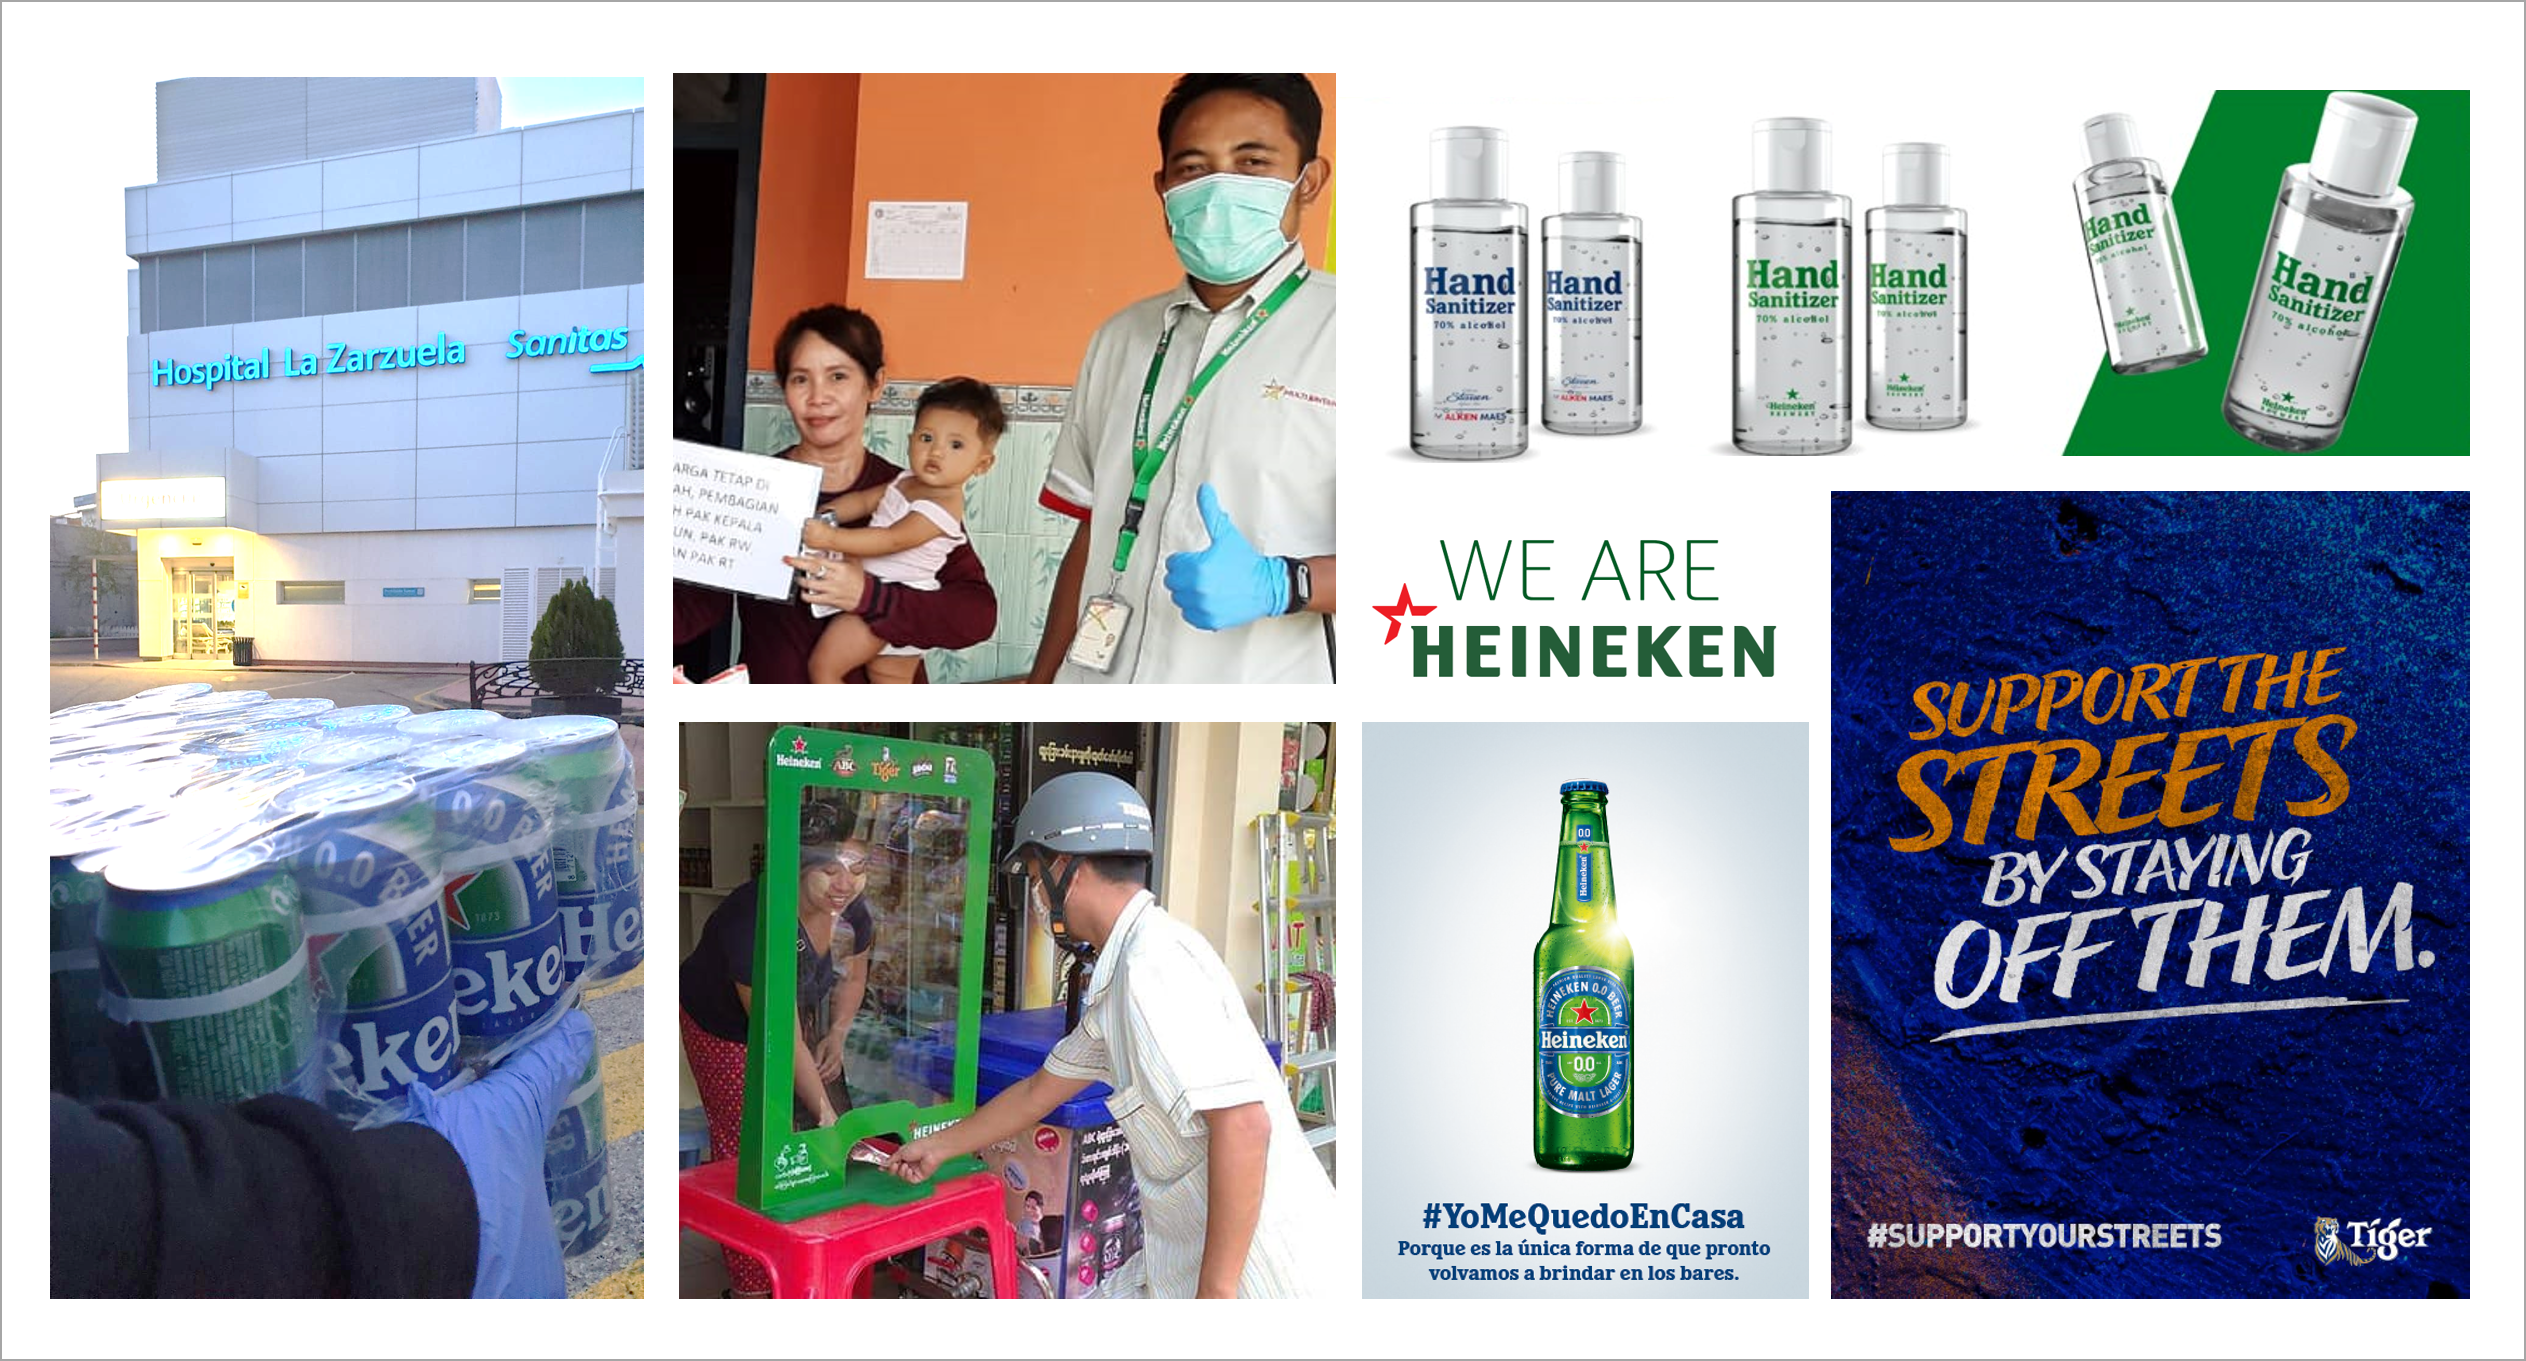 Heineken announces its response to Covid-19 and donates to the Red Cross - Brand Spur